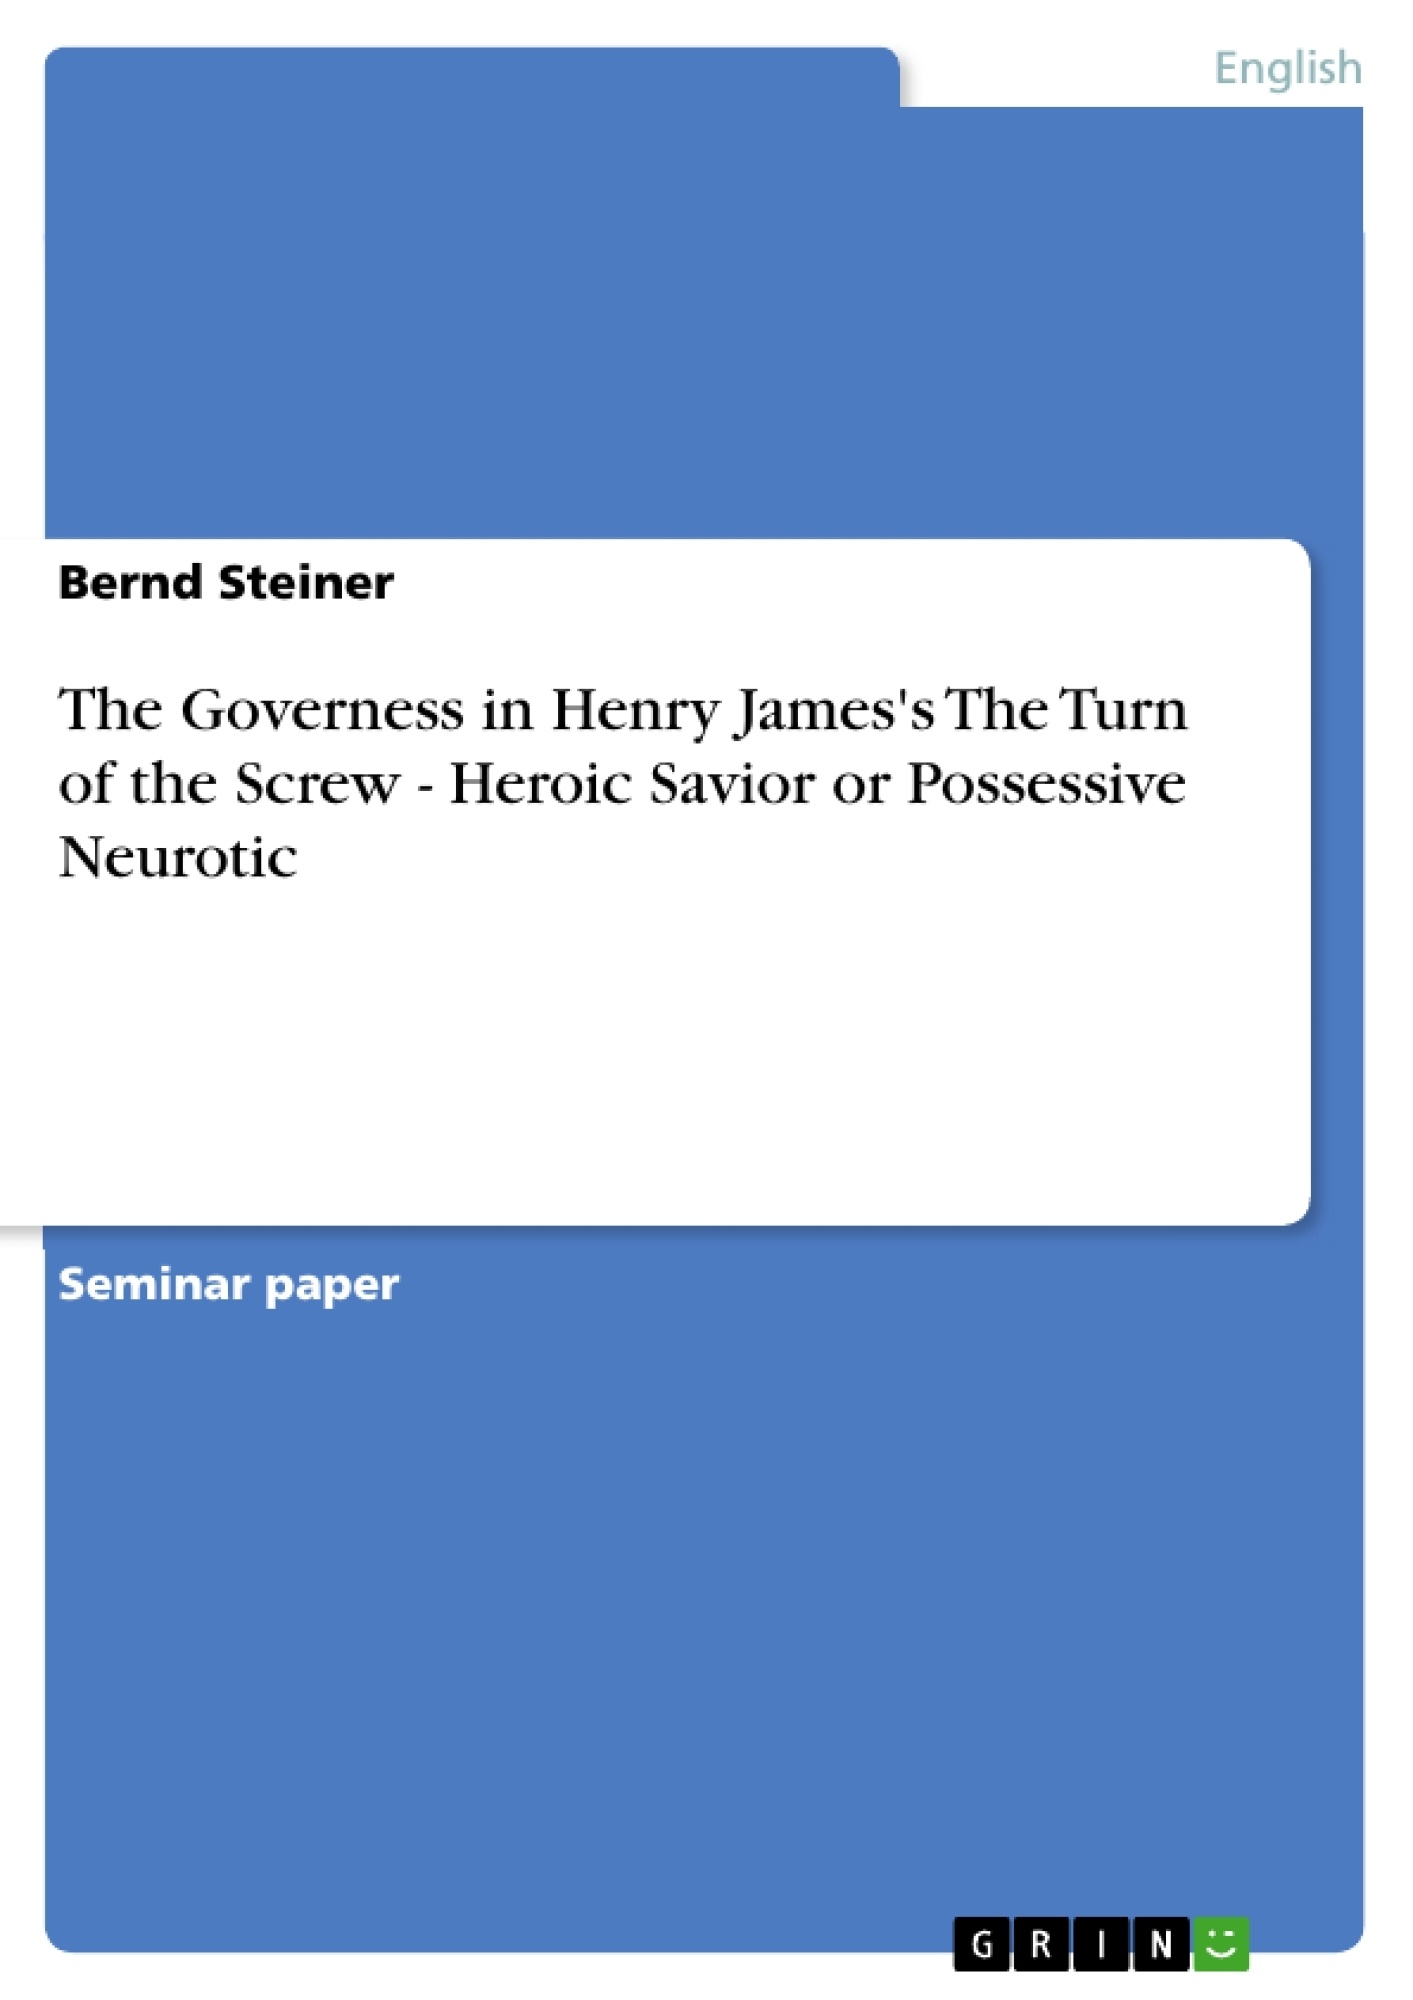 GRIN - The Governess in Henry James's The Turn of the Screw - Heroic Savior  or Possessive Neurotic